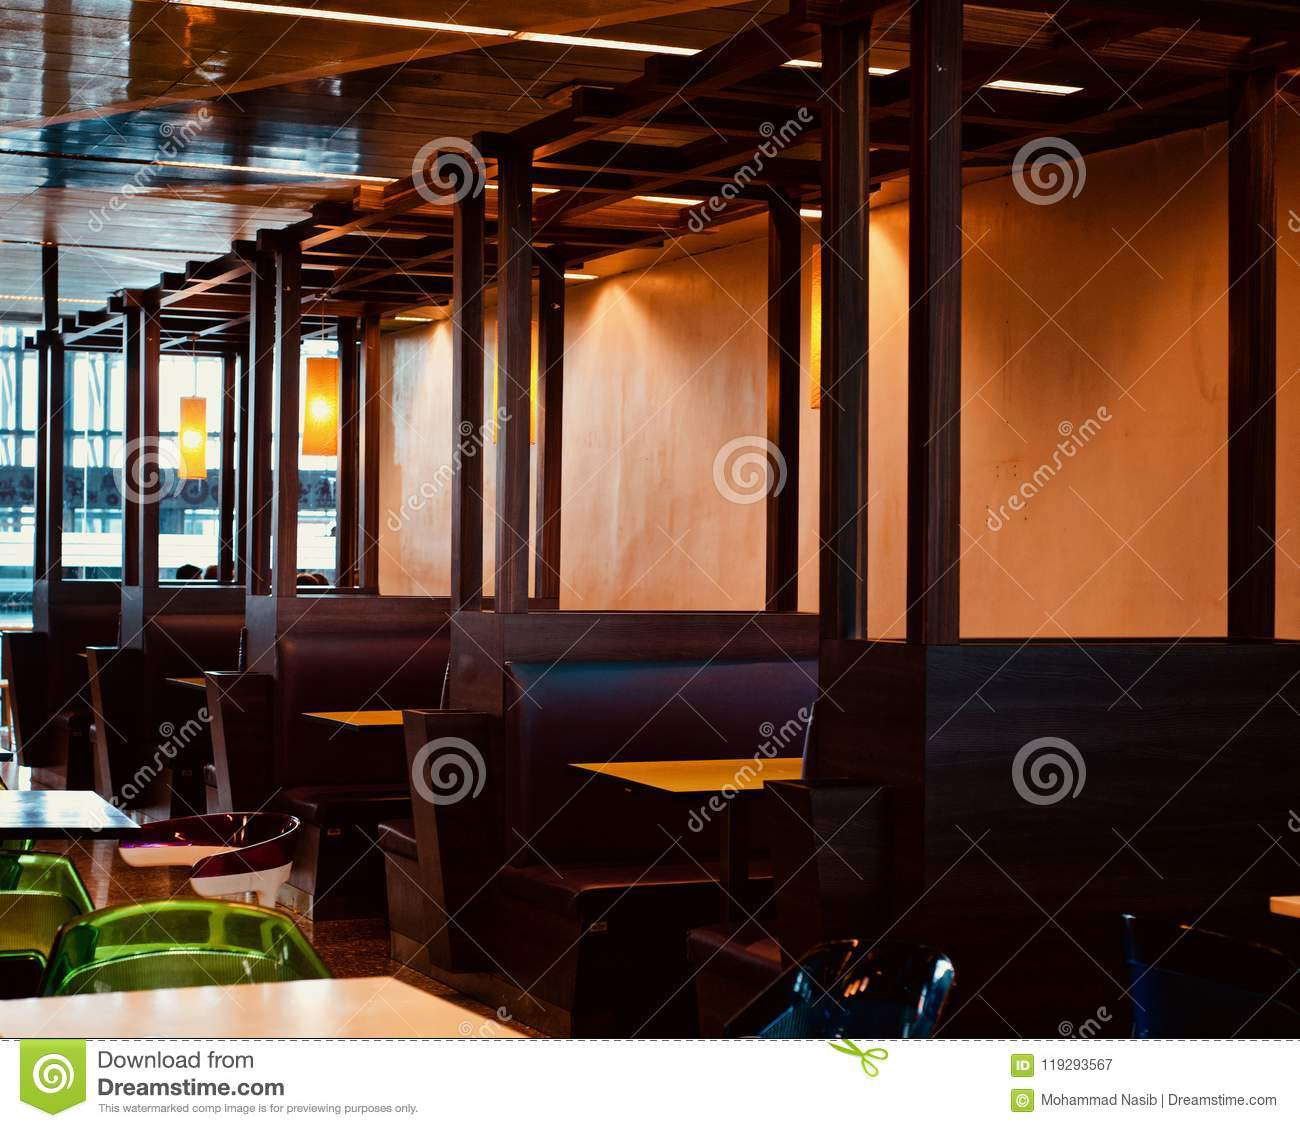 Download Beautiful Sitting Arrangements Of A Restaurant  Unique Photo Stock Image - Image of decor, chairs: 119293567